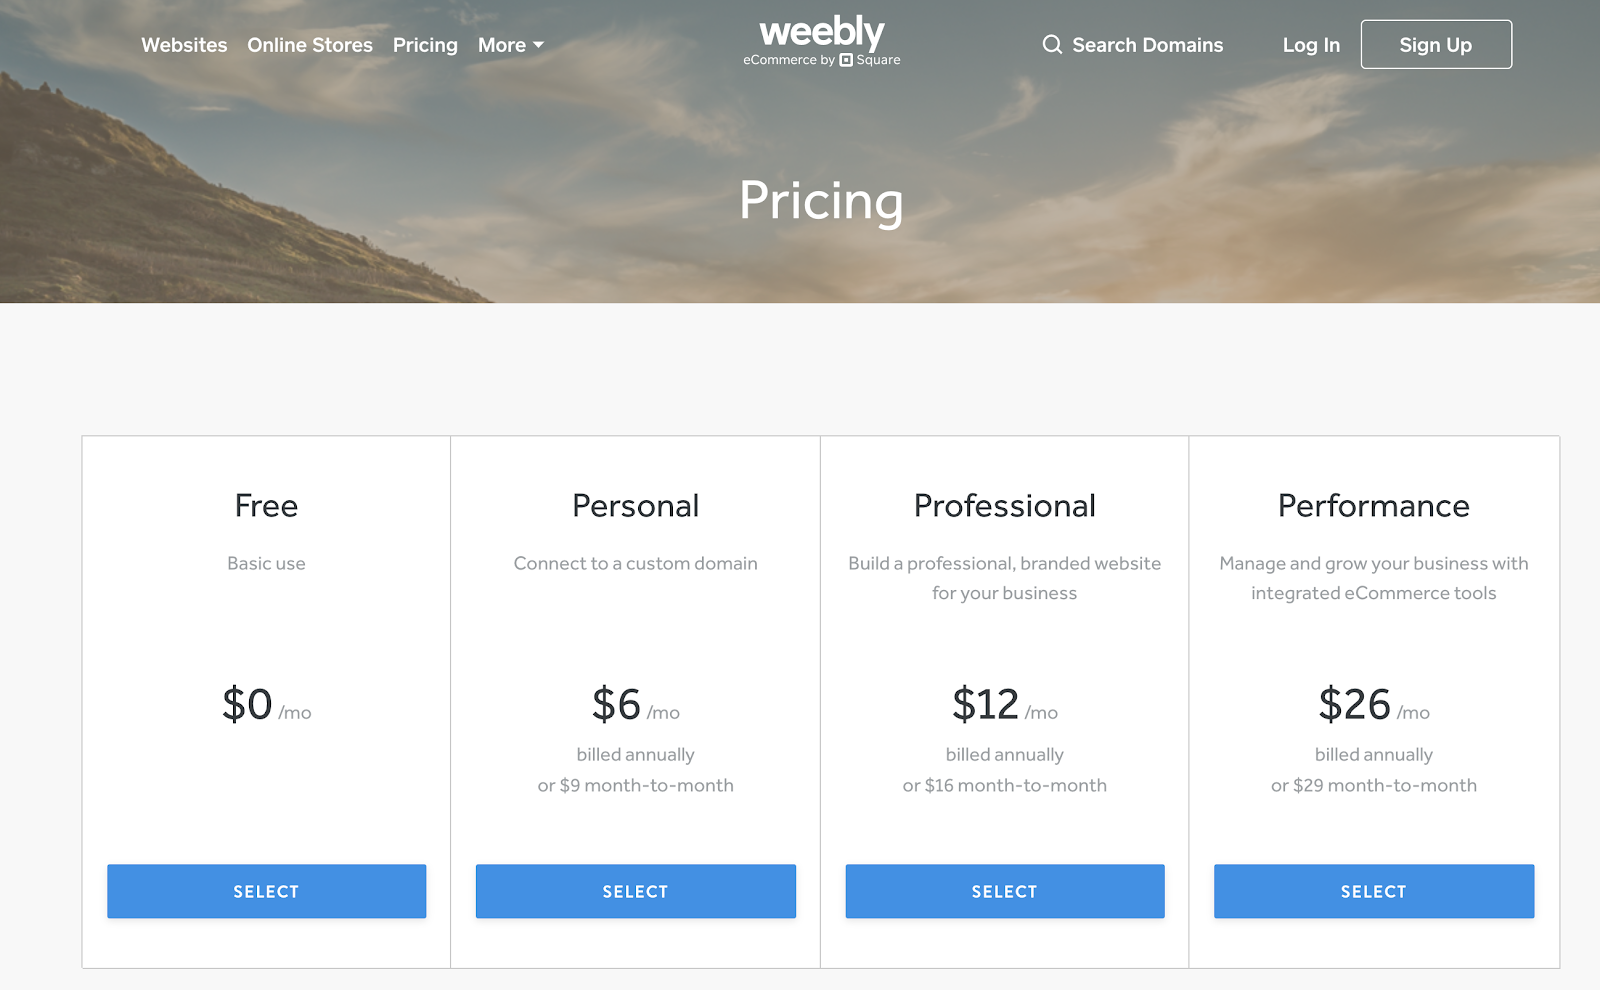 Weebly Pricing Plans Explained (Screenshot)